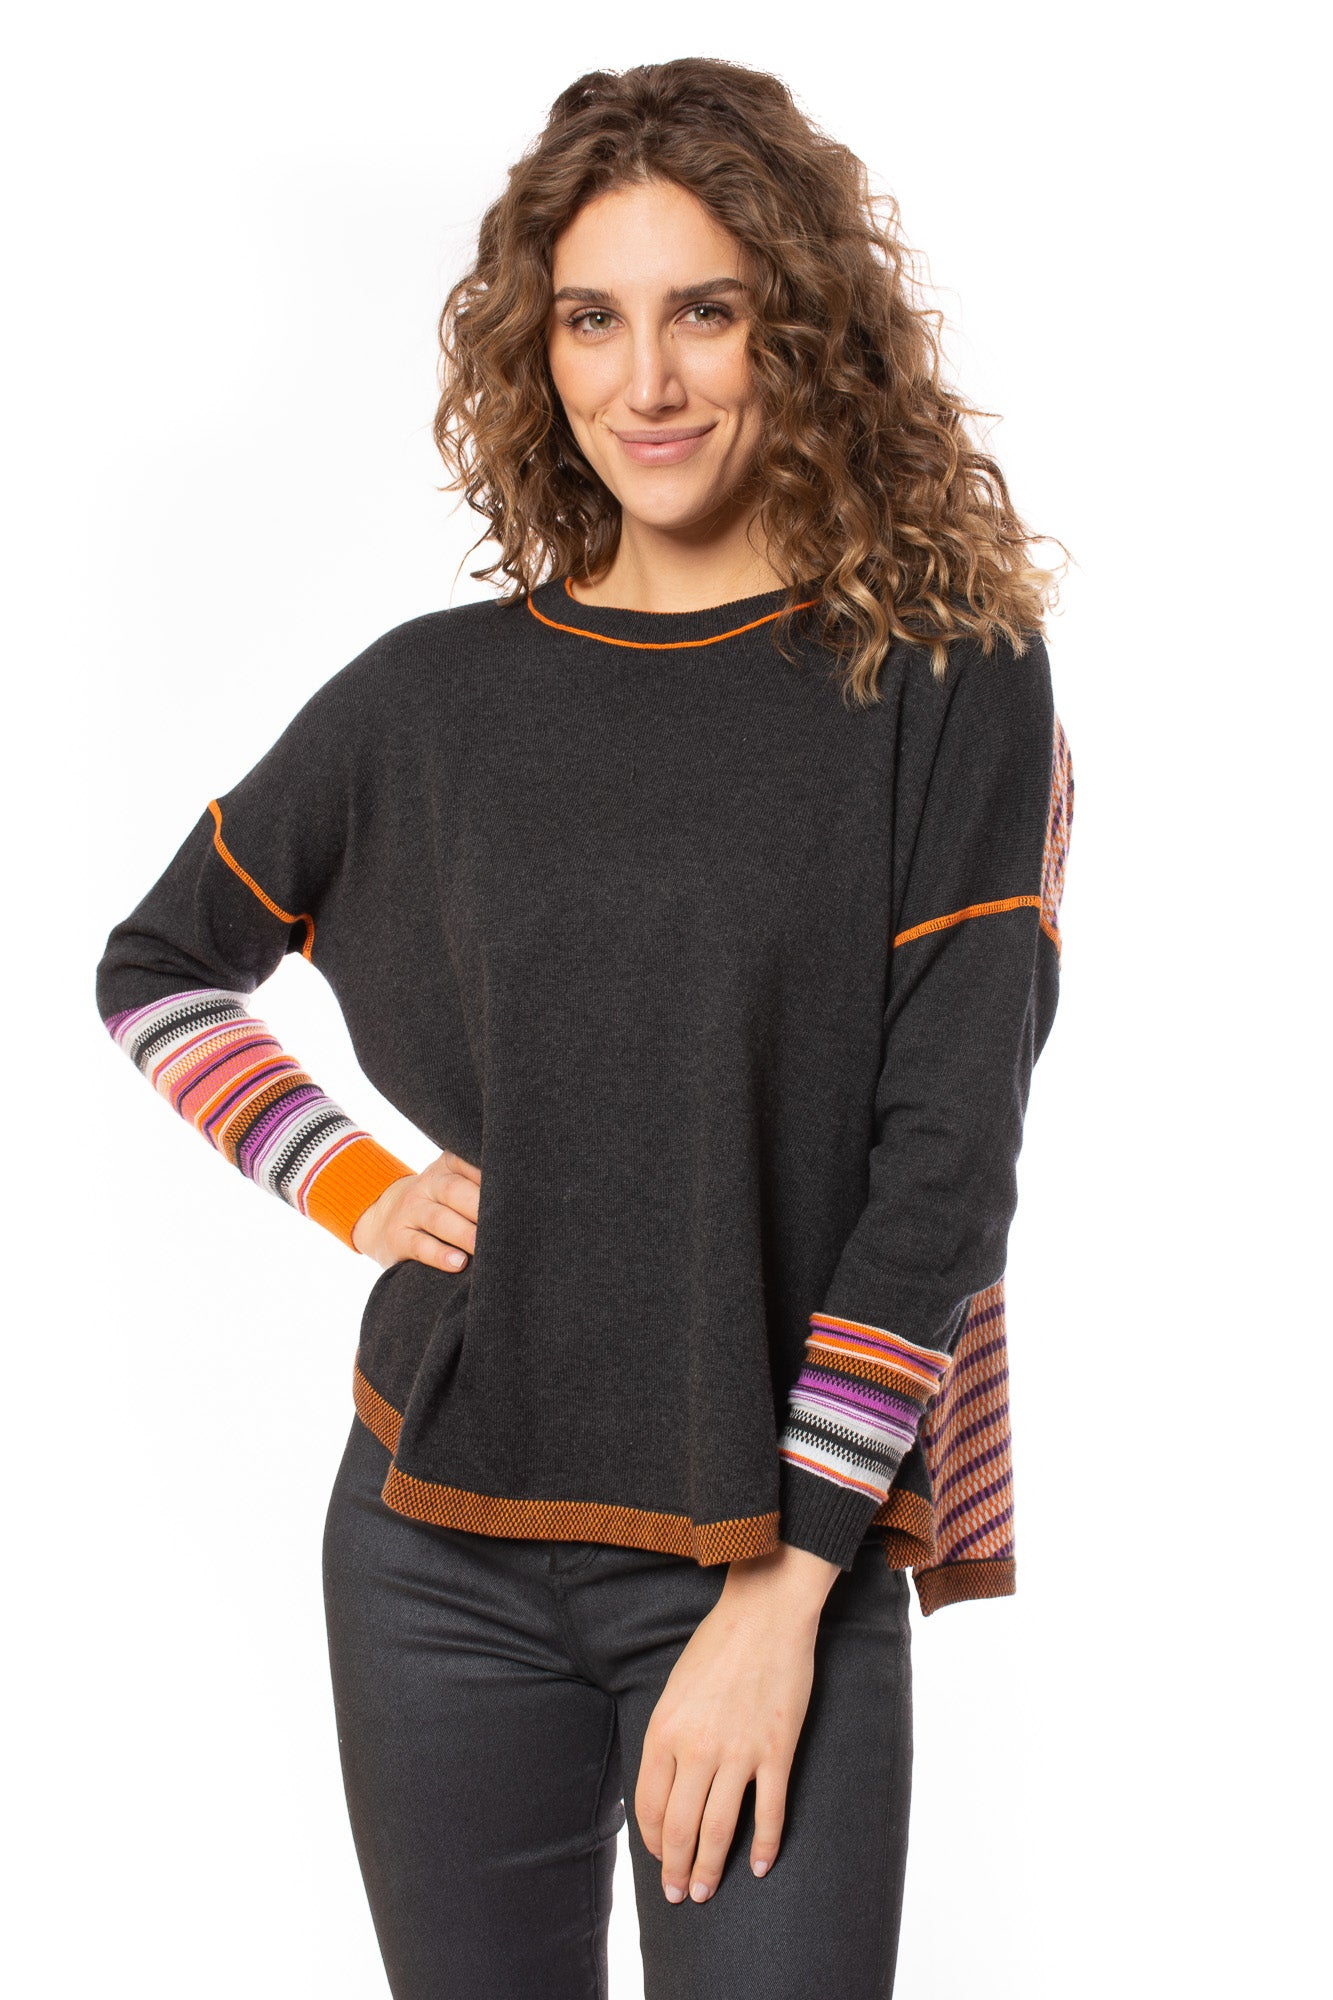 Zaket & Plover - Side Slit Back Accent Sweater (ZW2004U, Charcoal & Orange) alt view 1